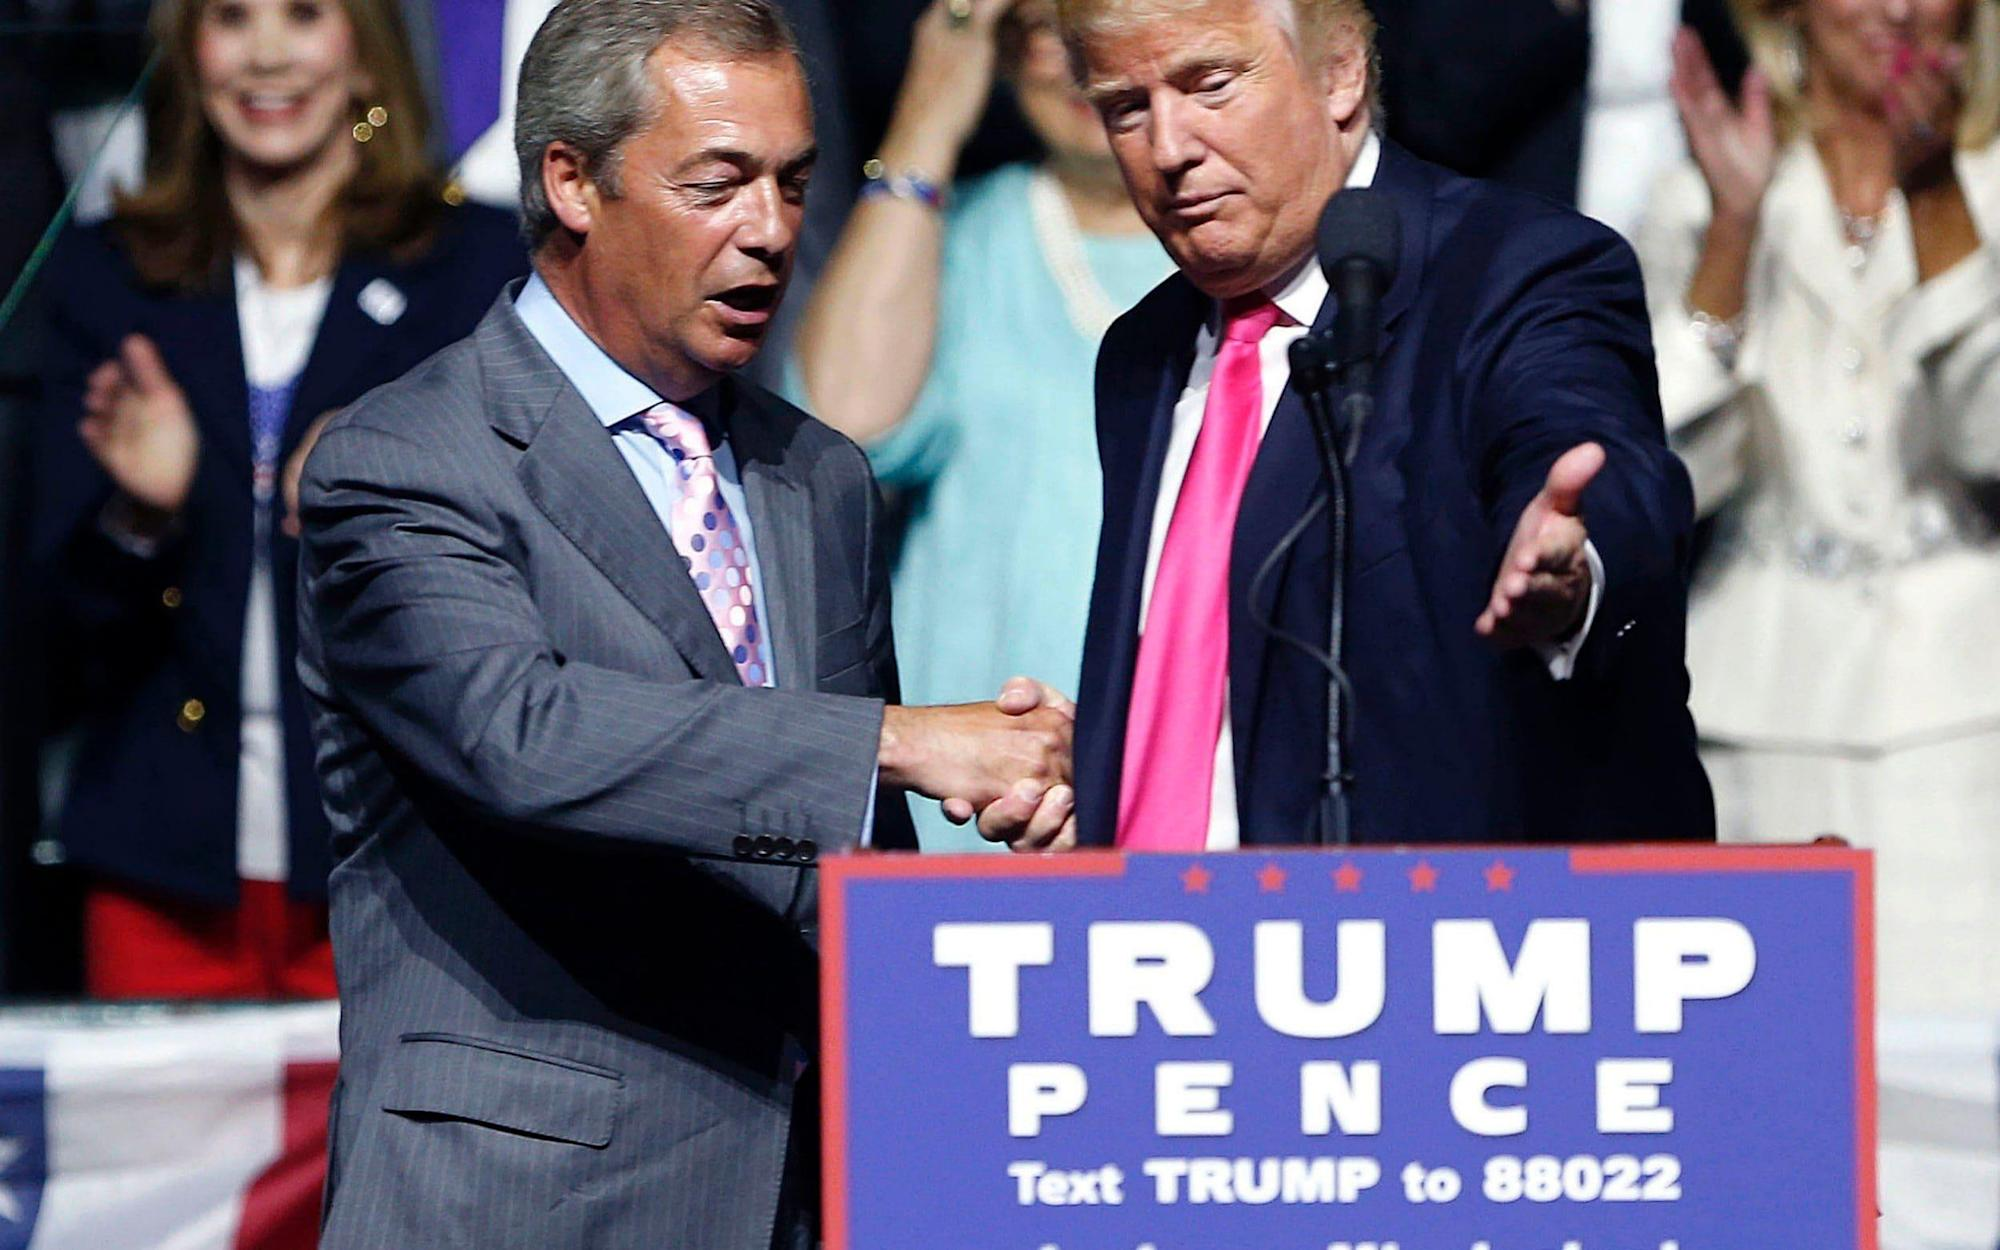 Nigel Farage warns Democrats: If you 'martyr' Donald Trump what follows 'could be very sinister indeed'